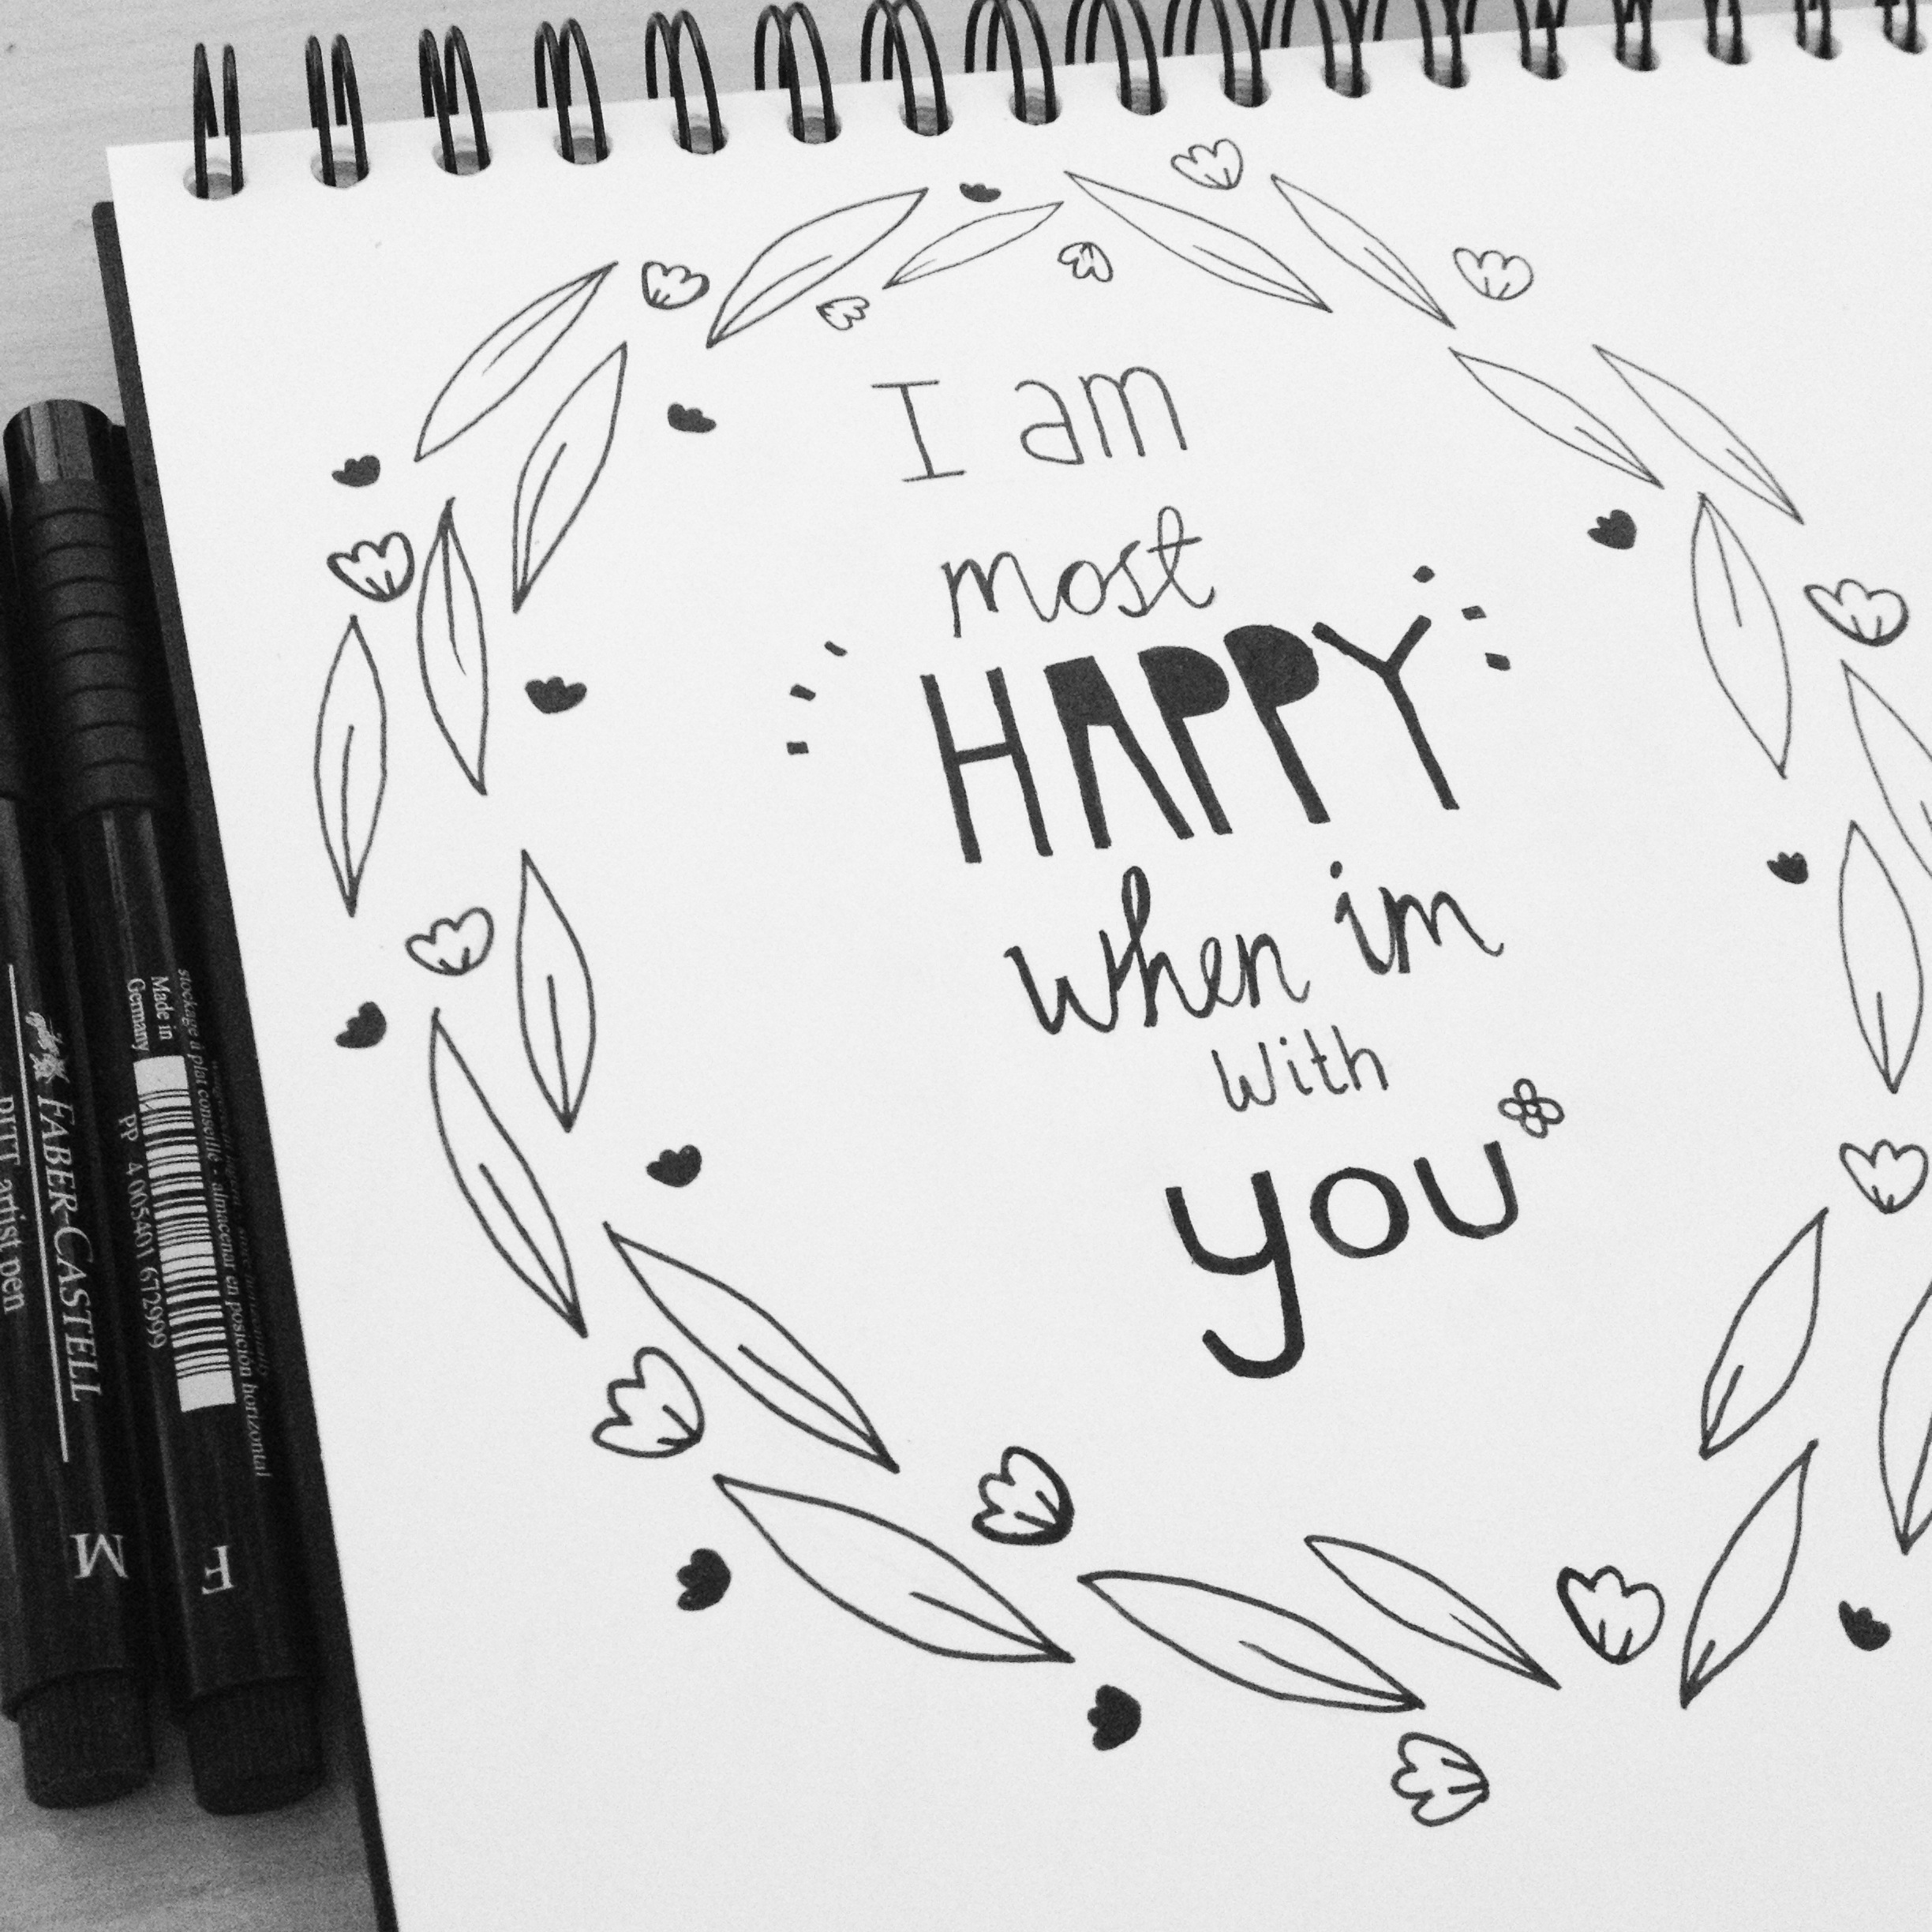 Inspirational Drawings: Inspirational Drawings Tumblr With Quotes